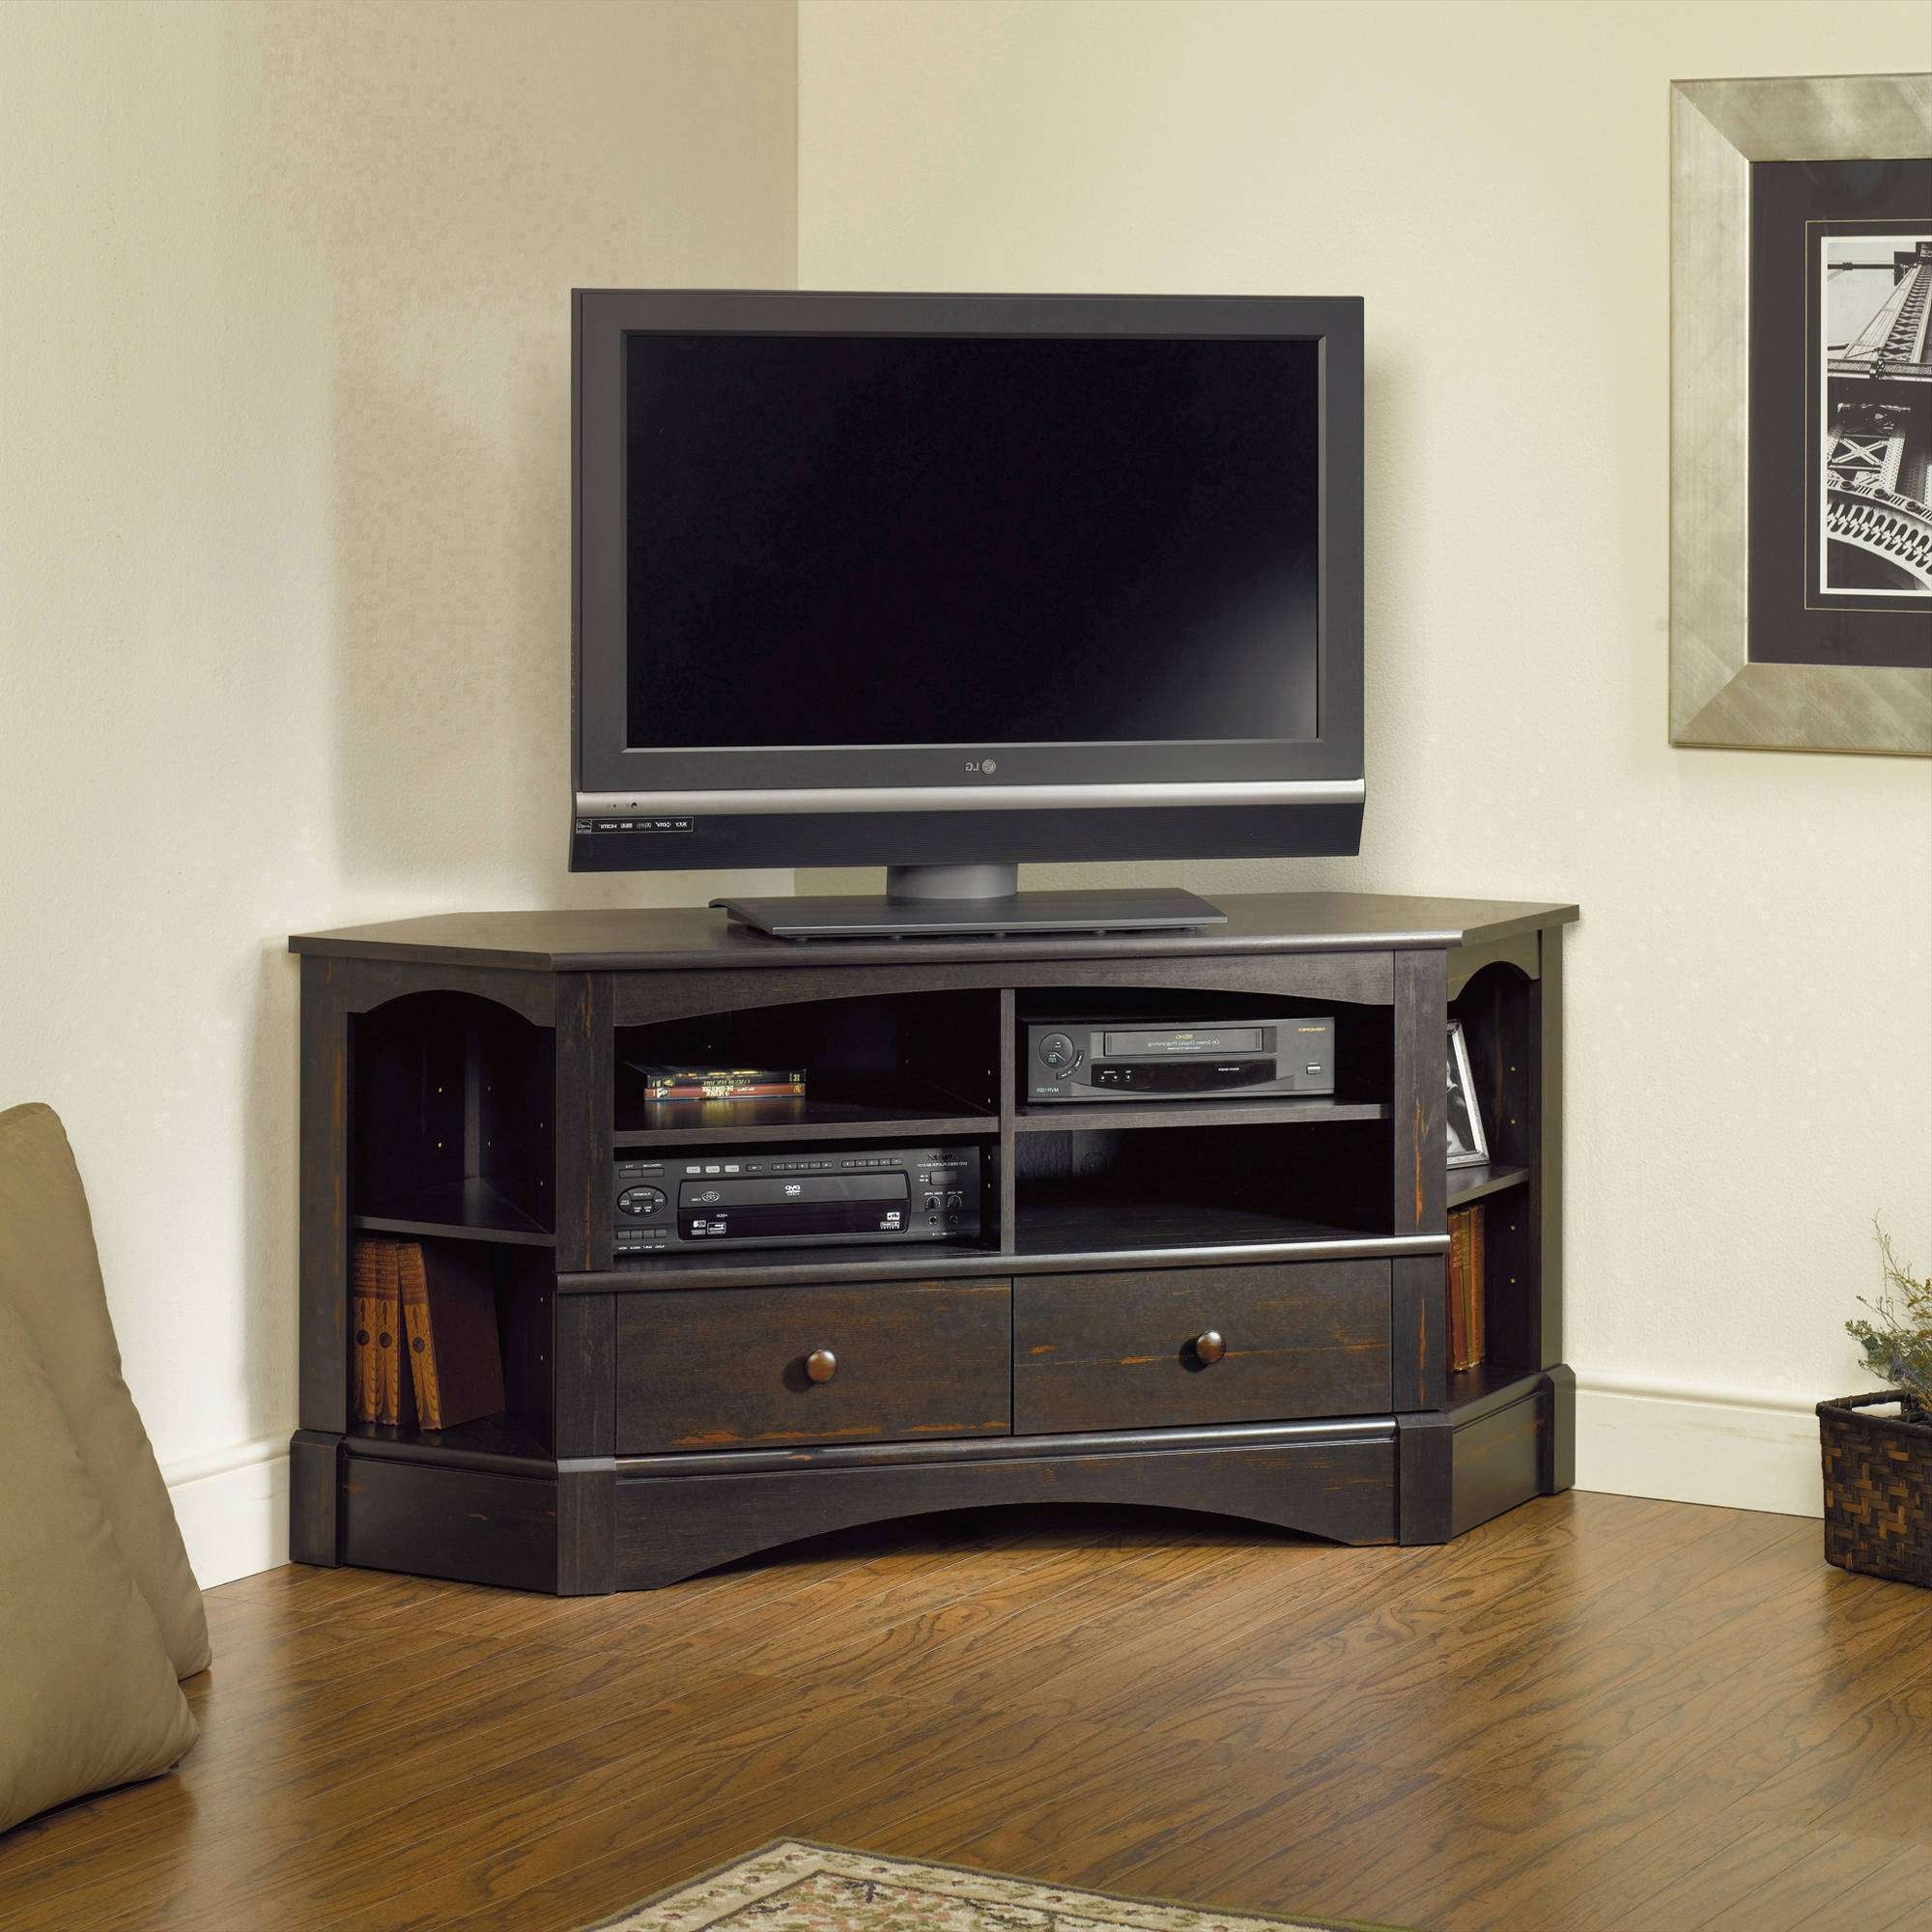 Desertsageyoga : Corner Tv Stands For Flat Screen (View 11 of 20)